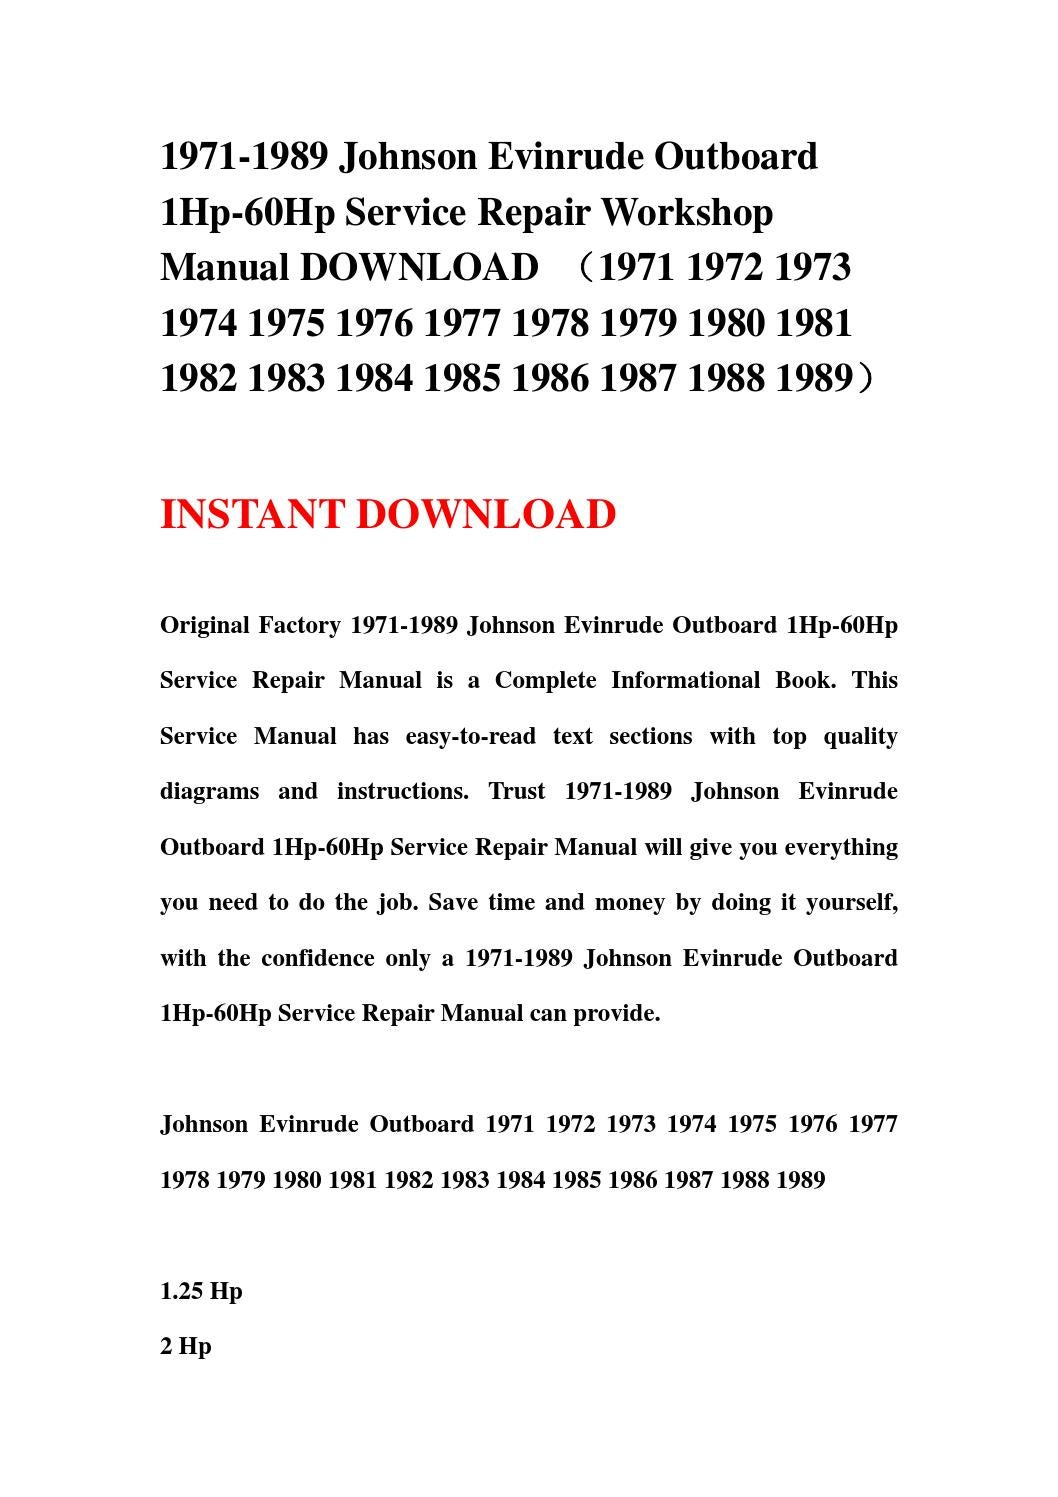 1975 evinrude 9.9 service manual download